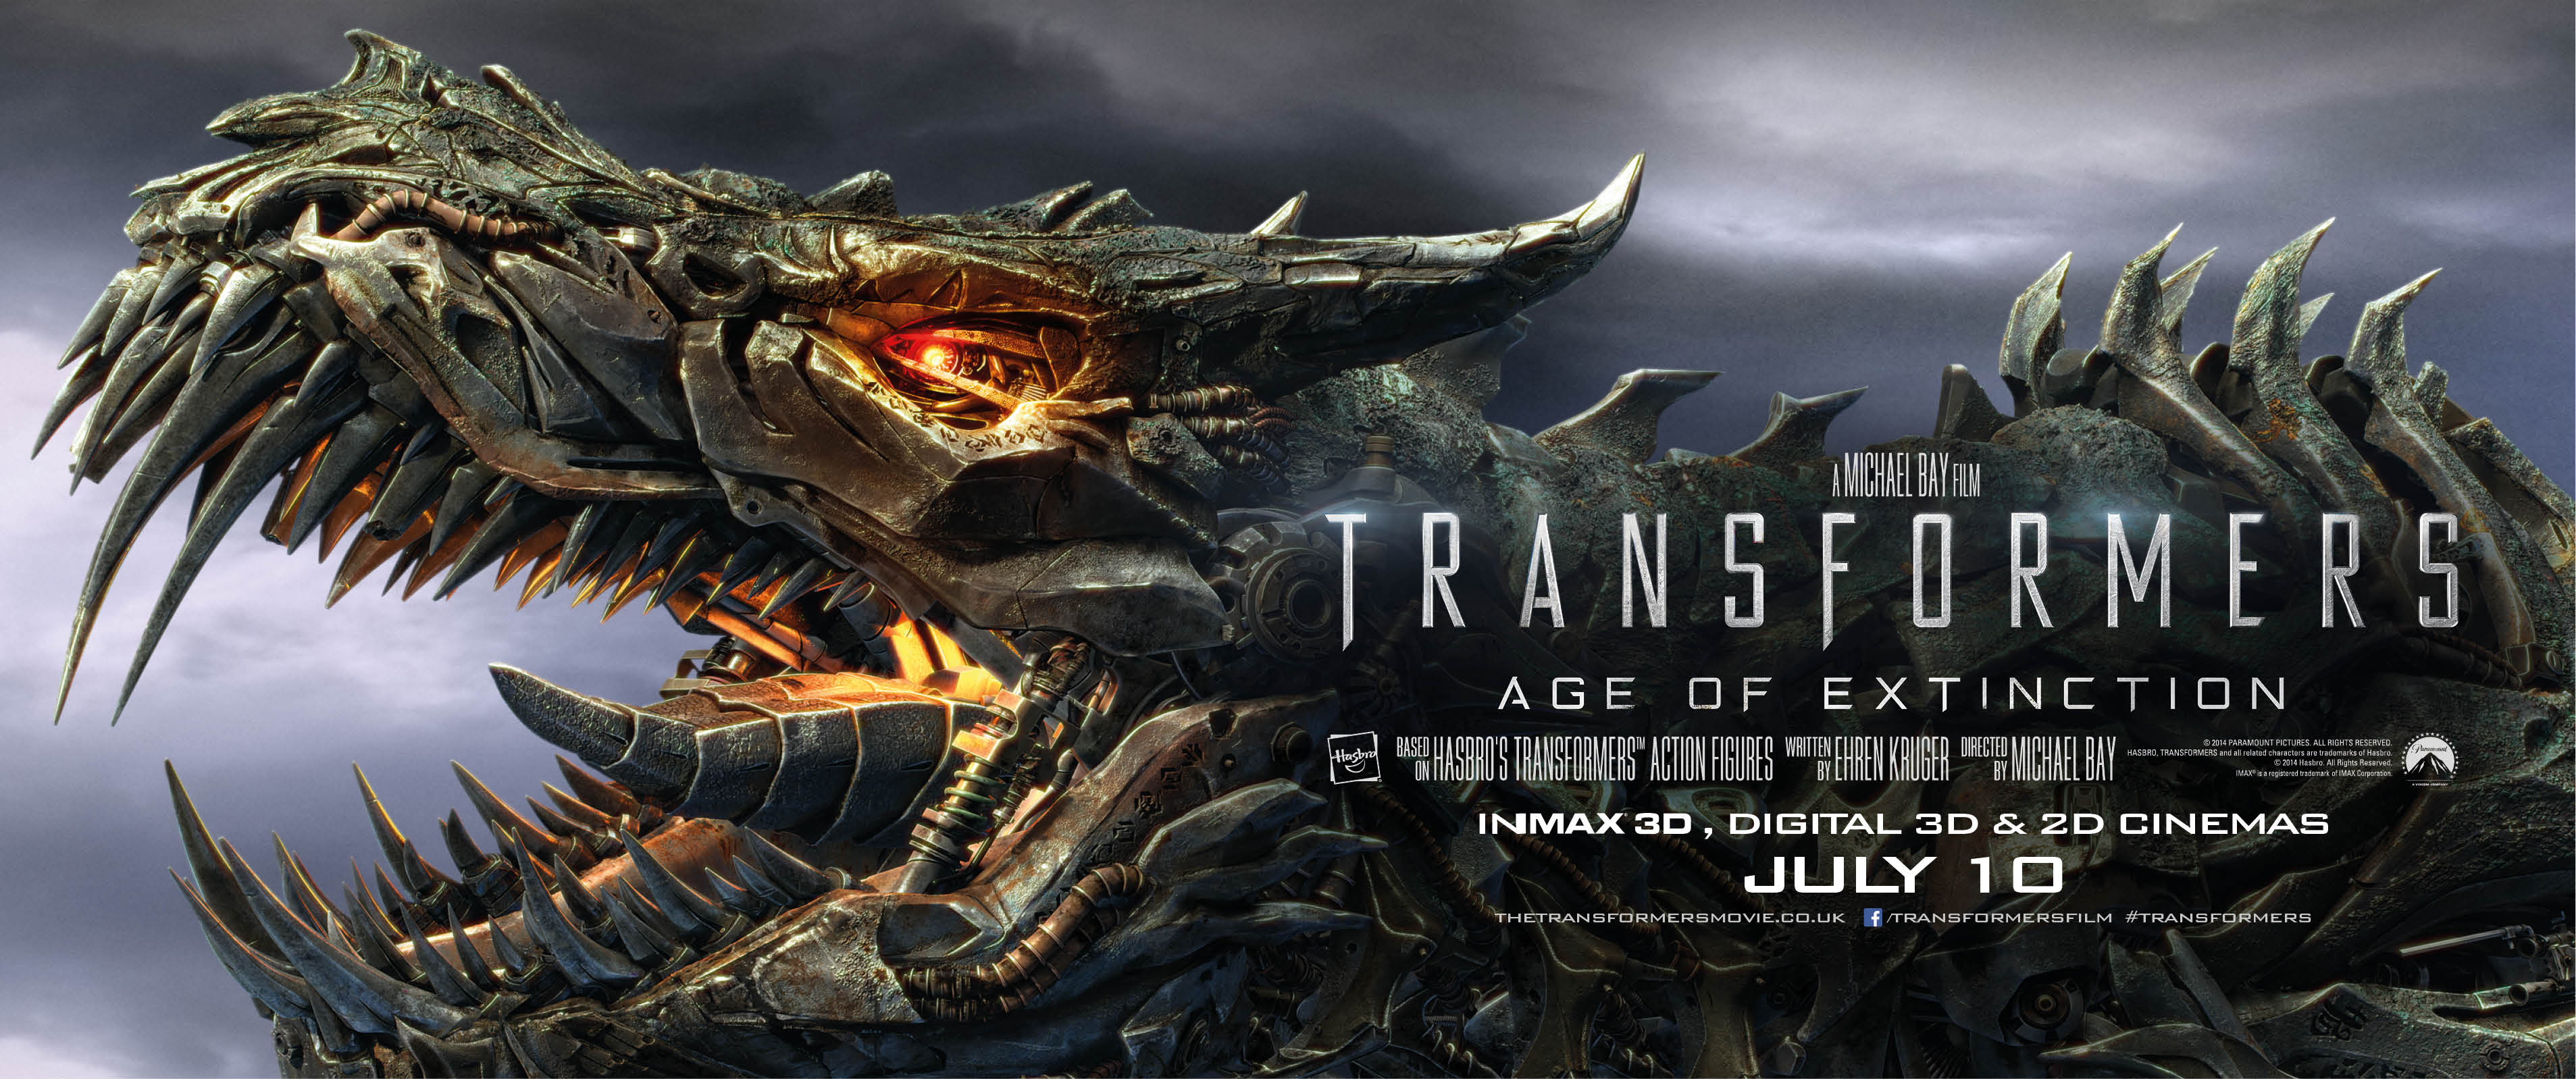 Transformers: Age of Extinction Passes $400 Million Worldwide